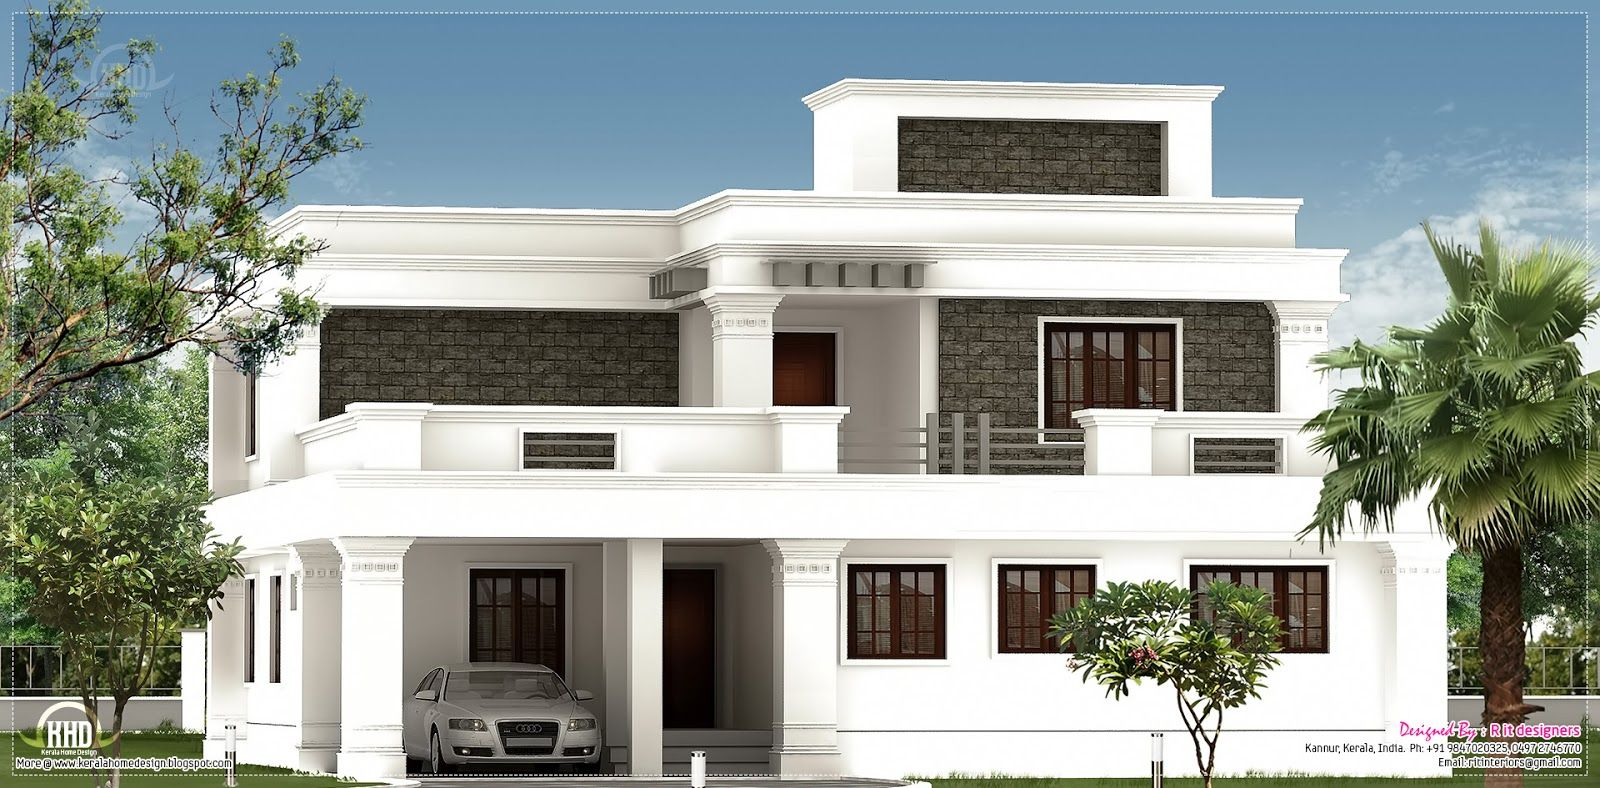 Flat roof homes designs flat roof villa exterior in 2400 Simple beautiful homes exterior